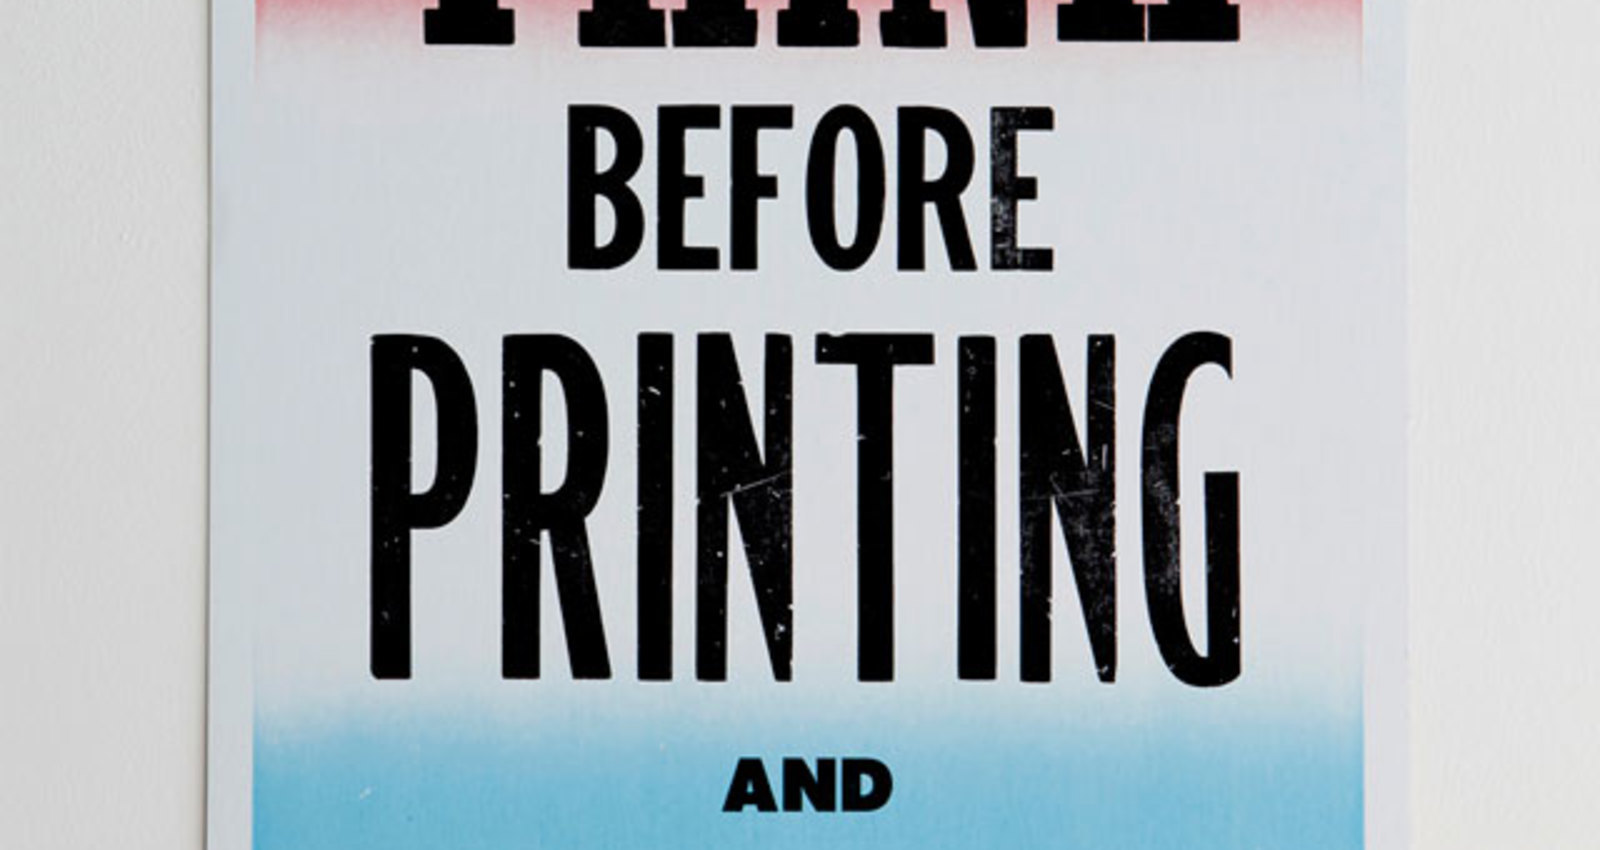 Think Before Printing